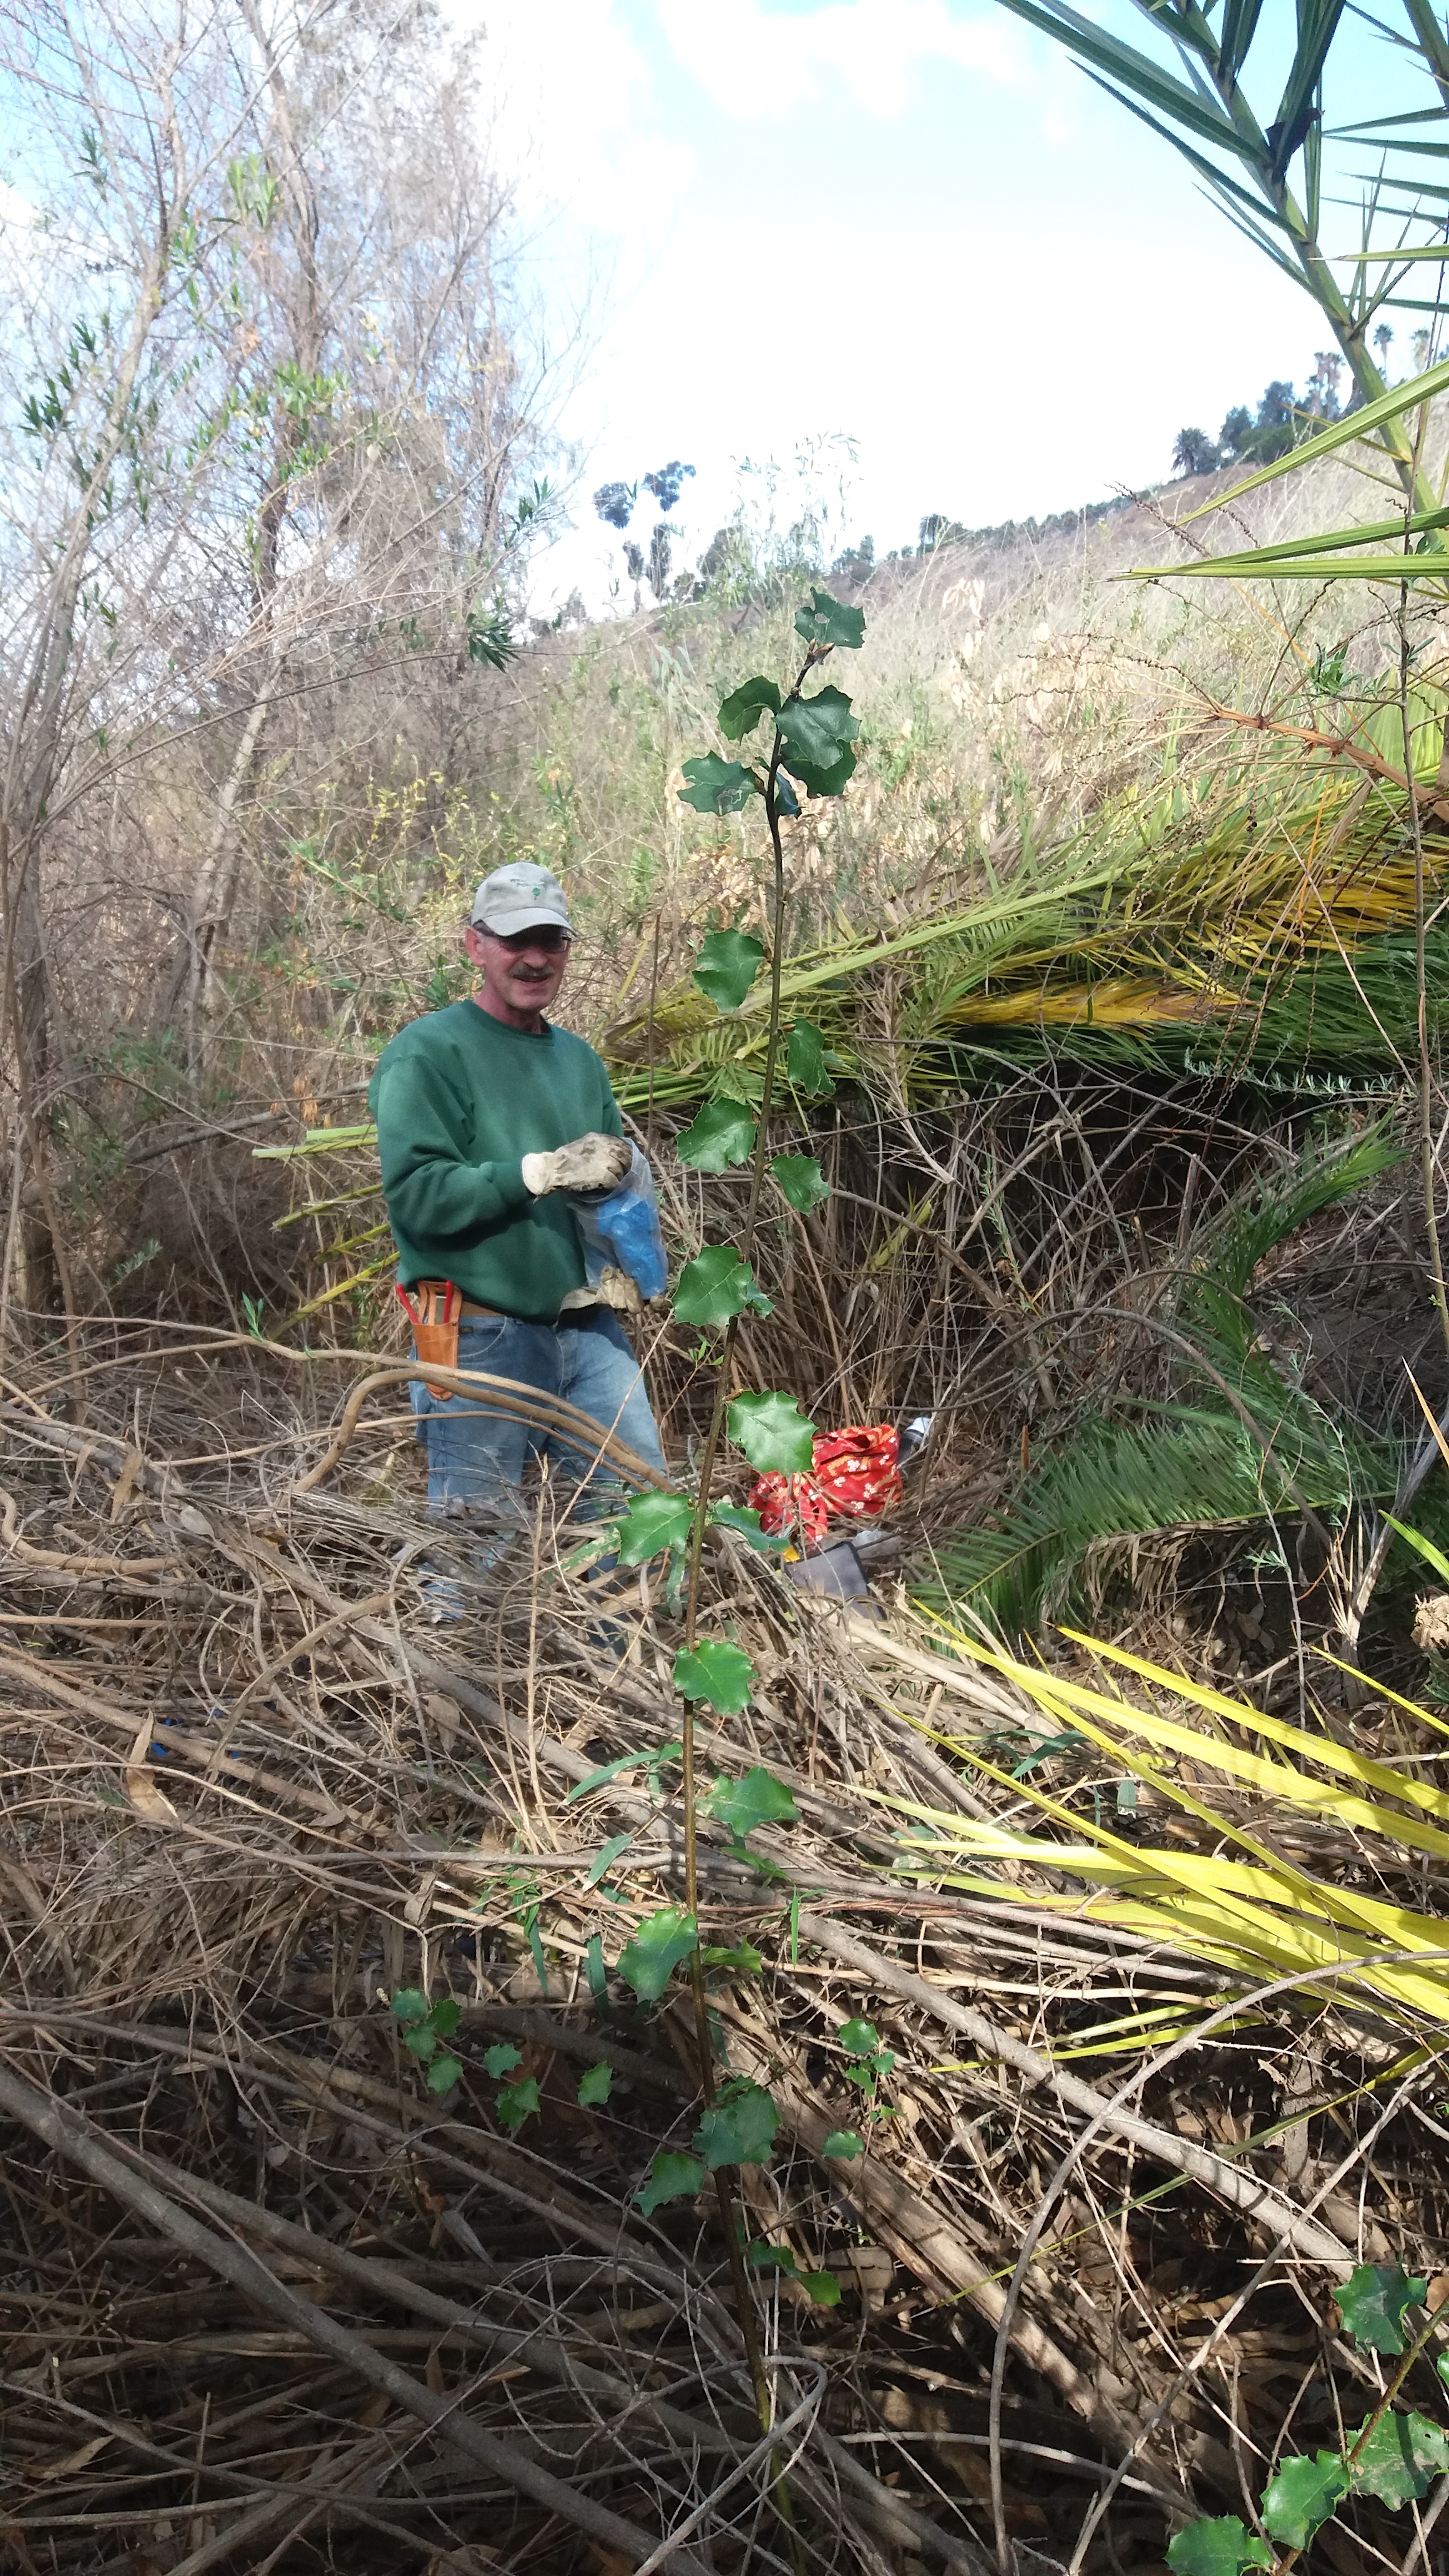 Bob Byrnes stands with a robust Coast Live Oak sapling brought into the sunlight after palm fronds shading it were removed.